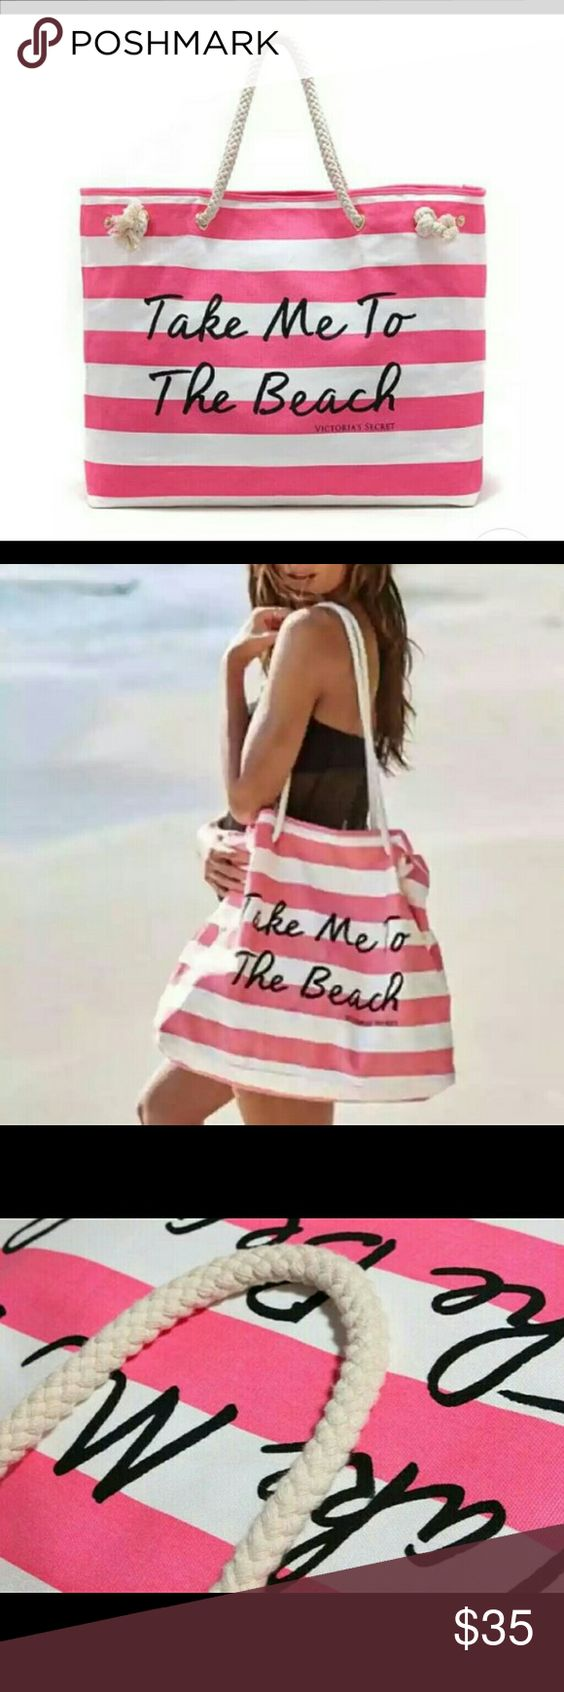 """⚡FLASH SALE⚡ Beach Bag ONLY 1 HOUR New. Pink and White Stripes... """"Take Me to the Beach"""" bag.  FINAL PRICE available until we go to USPS tomorrow  Victoria's Secret Bags"""